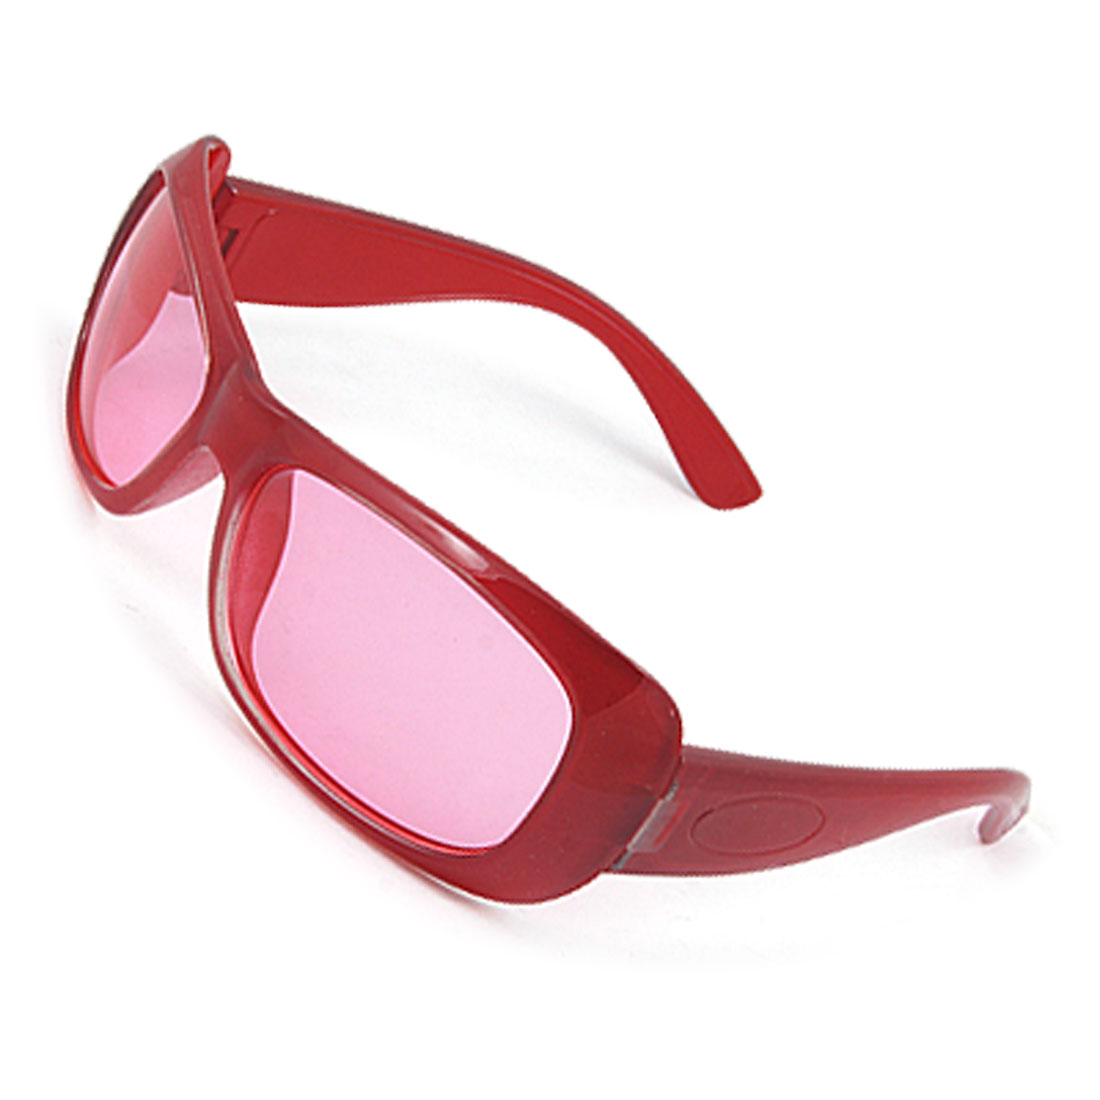 Red Plastic Arms Full Rim Outdoor Sunglasses for Child